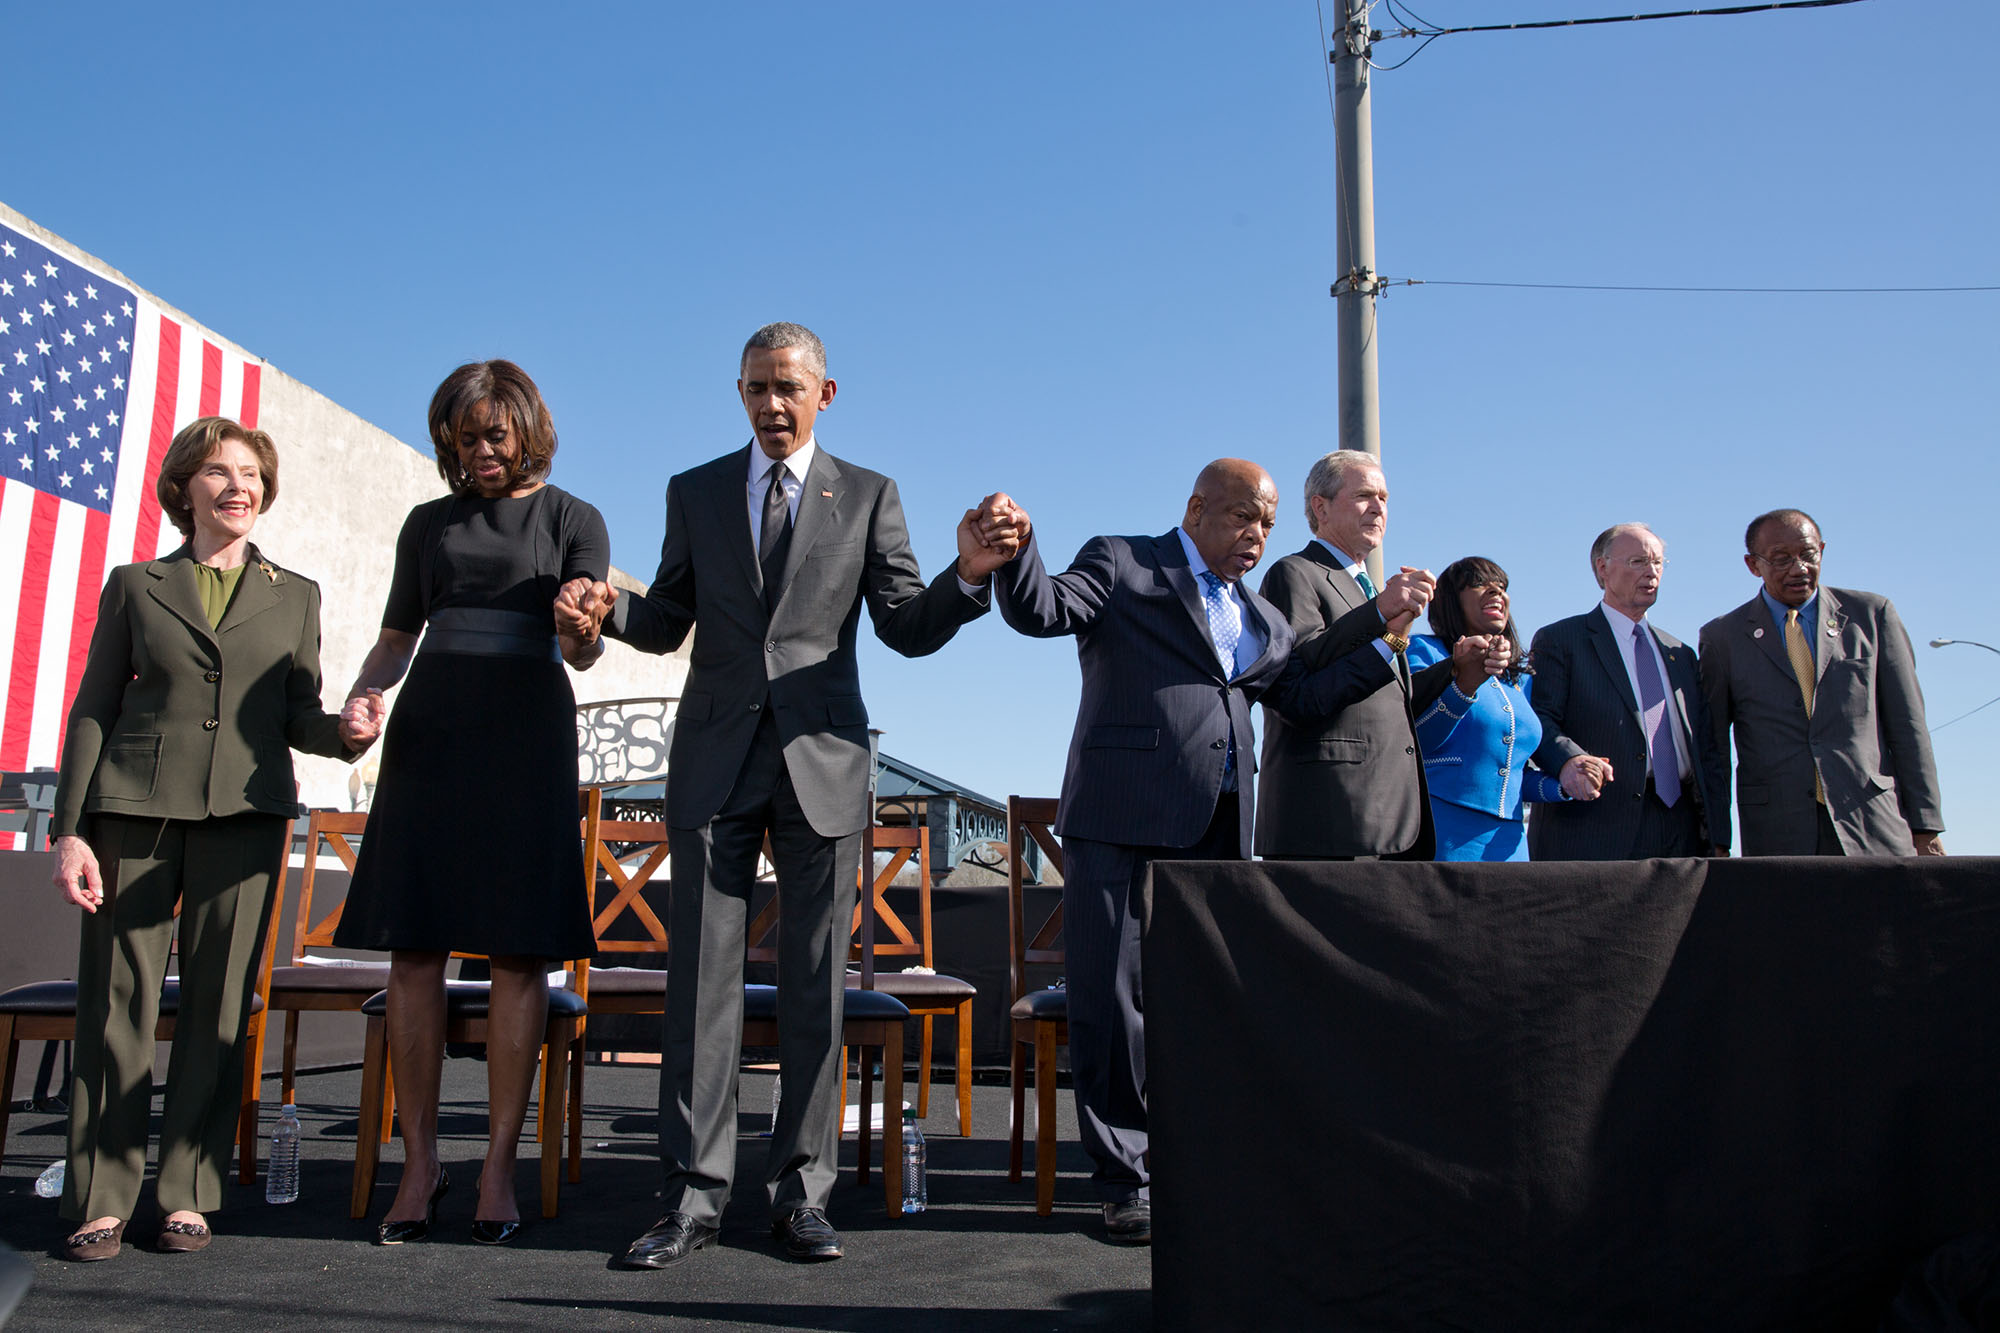 File:50th Anniversary of the Selma Marches - Former President George W Bush and former